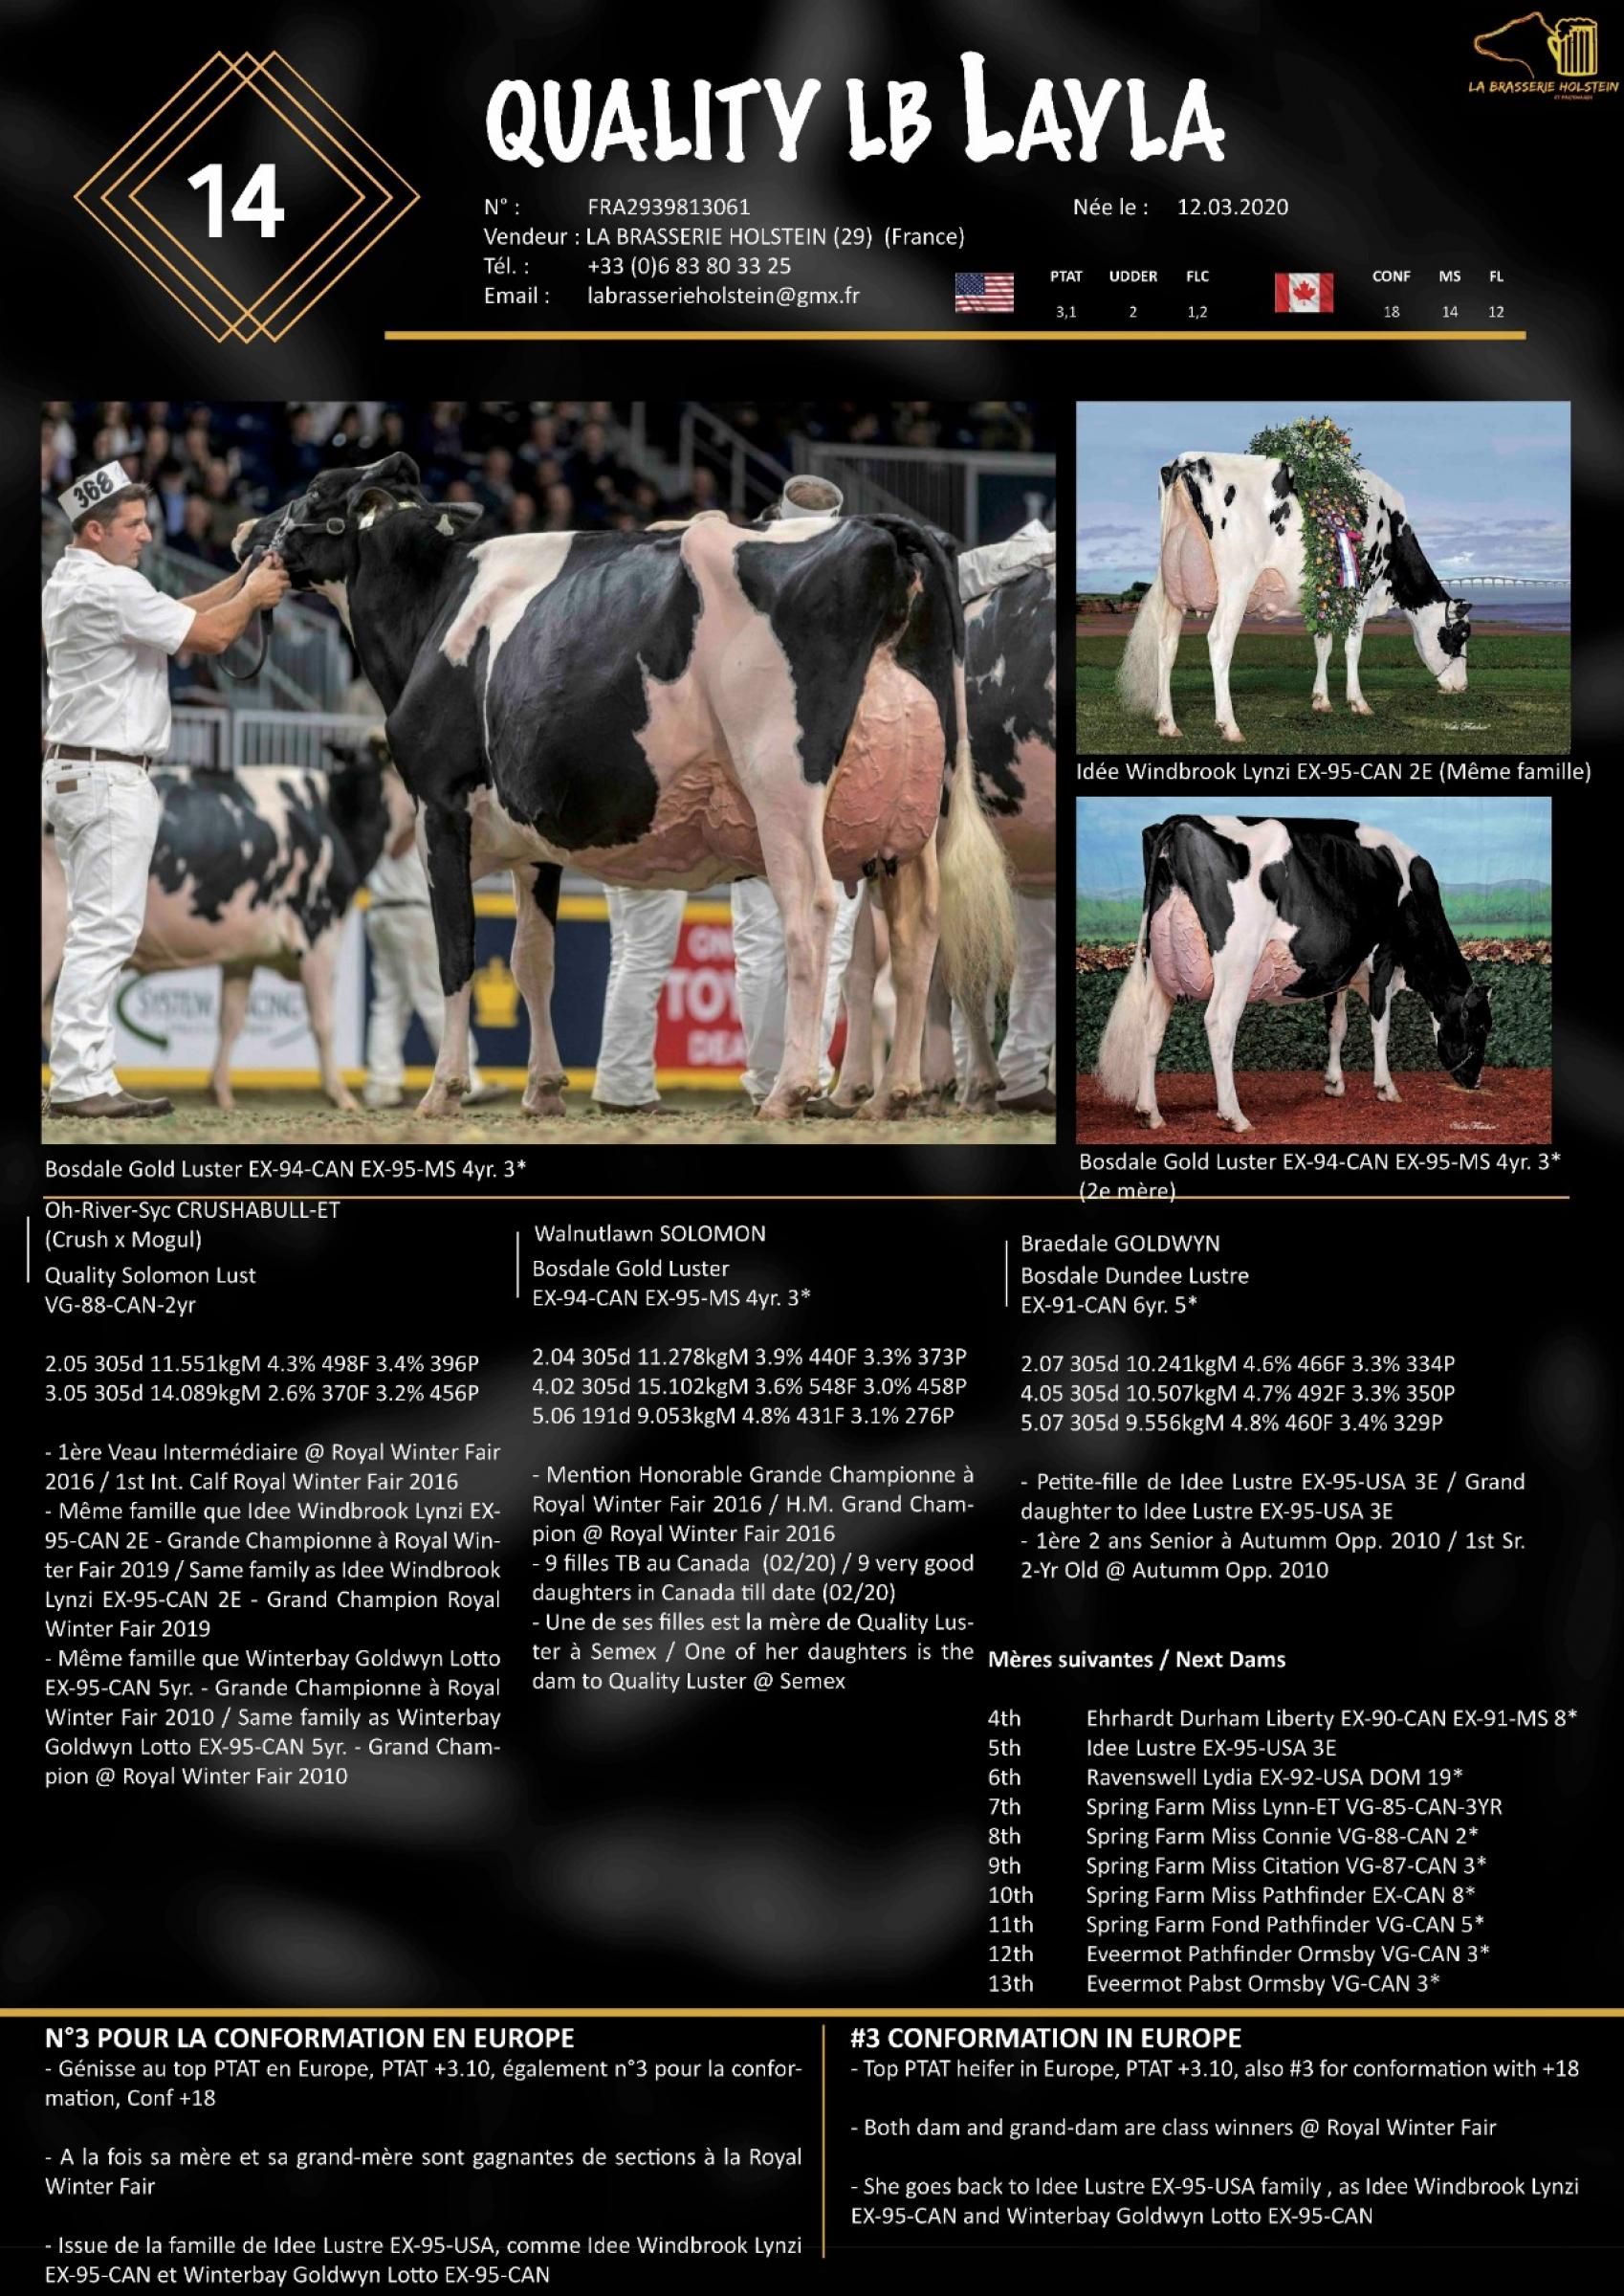 Datasheet for Lot 14. Quality LB Layla